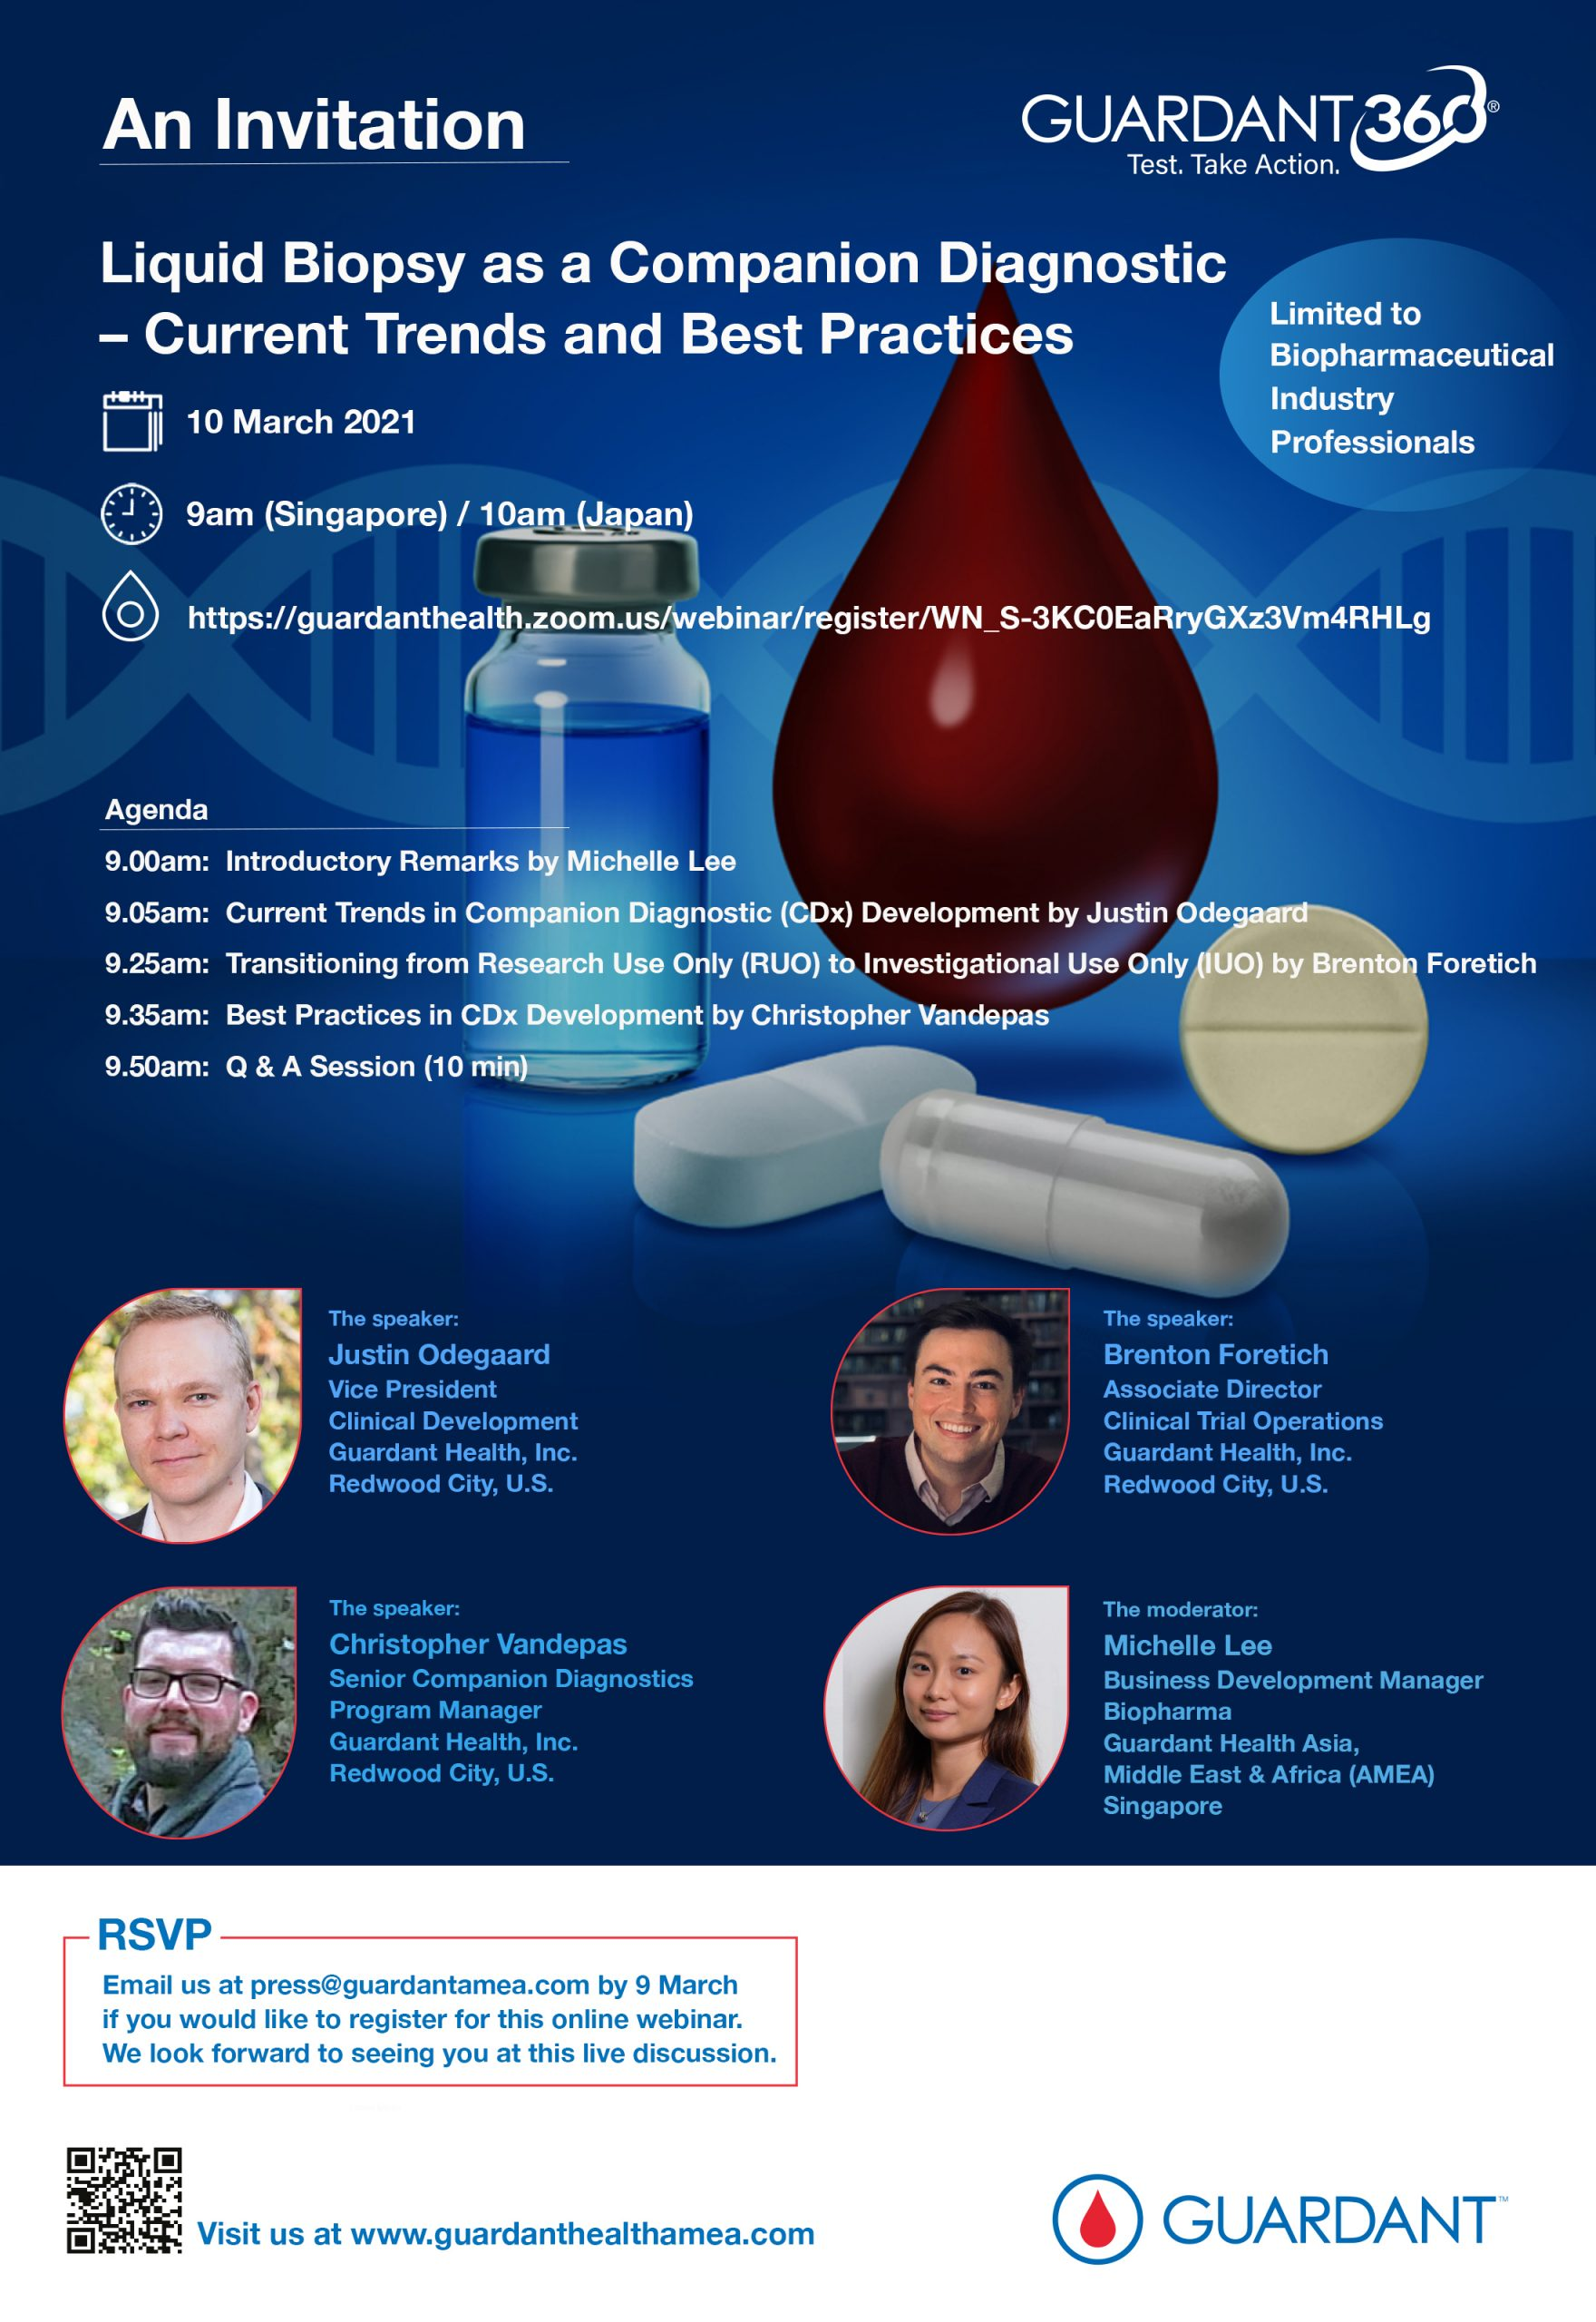 """Calling All Biopharmaceutical Industry Professionals! Join us on 10 March at 9am (GMT+8hrs) for a Webinar Discussion on """"Liquid Biopsy as a Companion Diagnostic – Current Trends and Best Practices""""."""